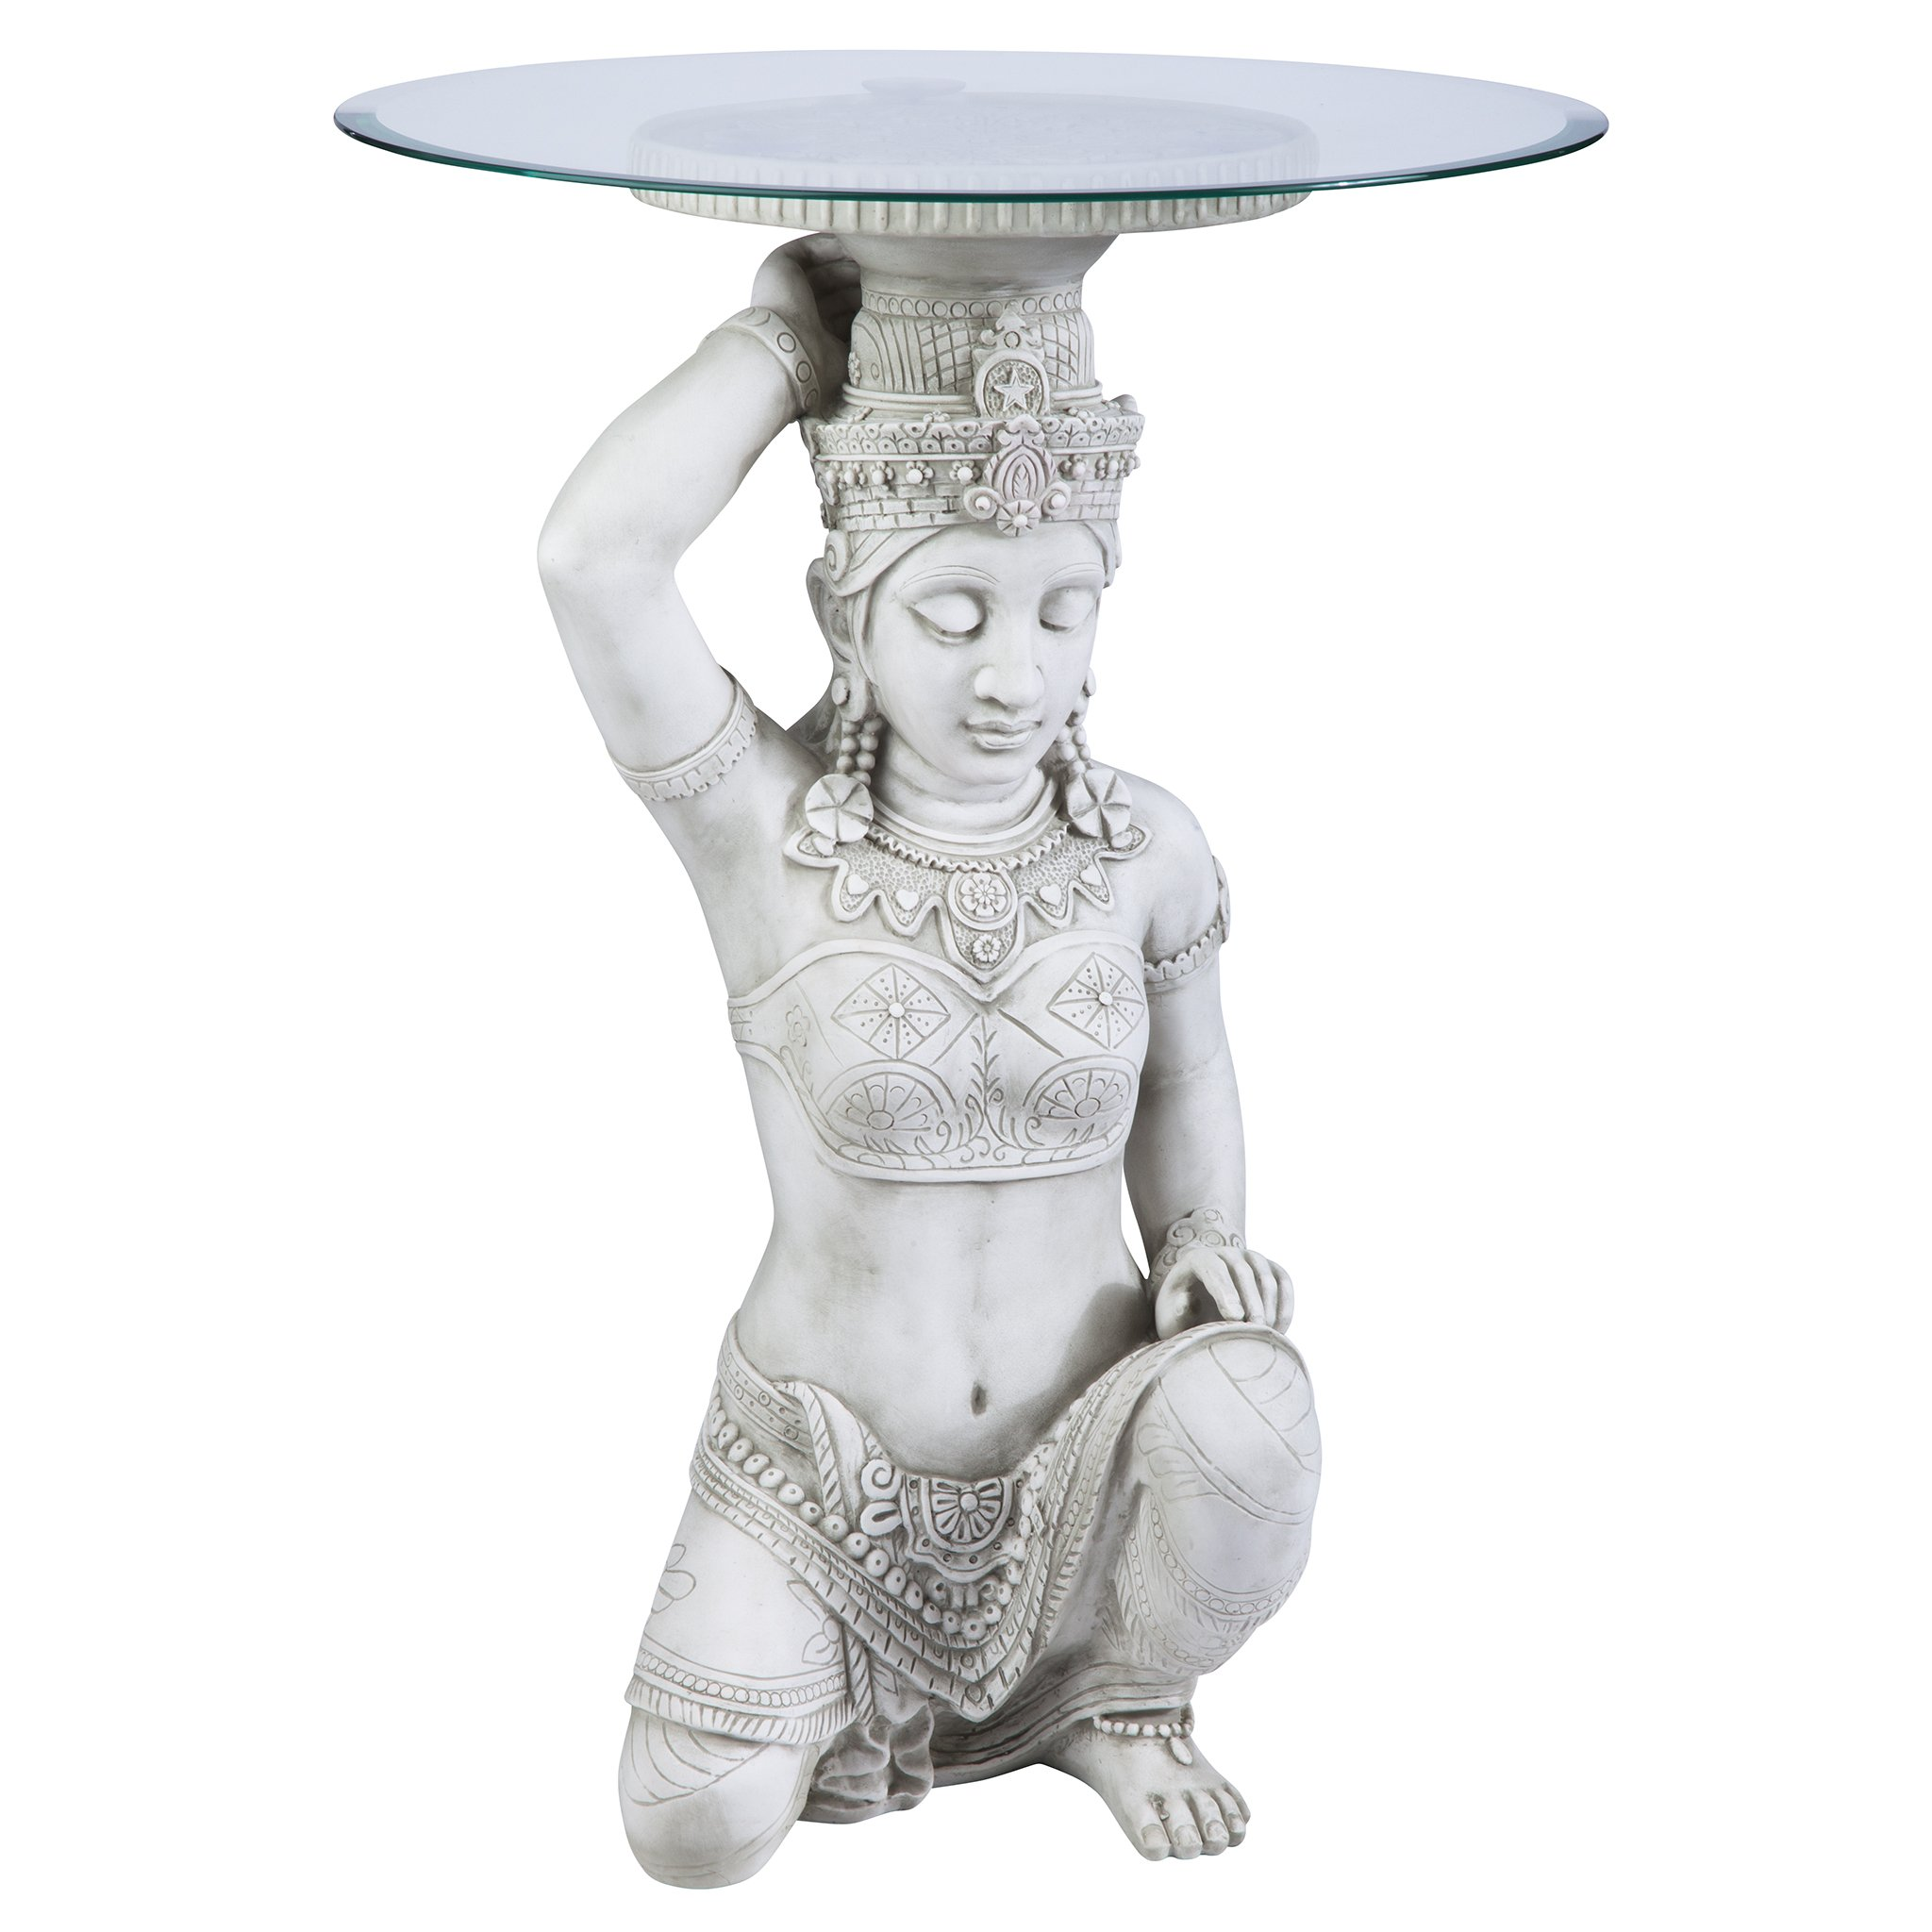 Design Toscano Thai Teppanom Beautiful Being Glass -Topped Asian Decor Table by Design Toscano